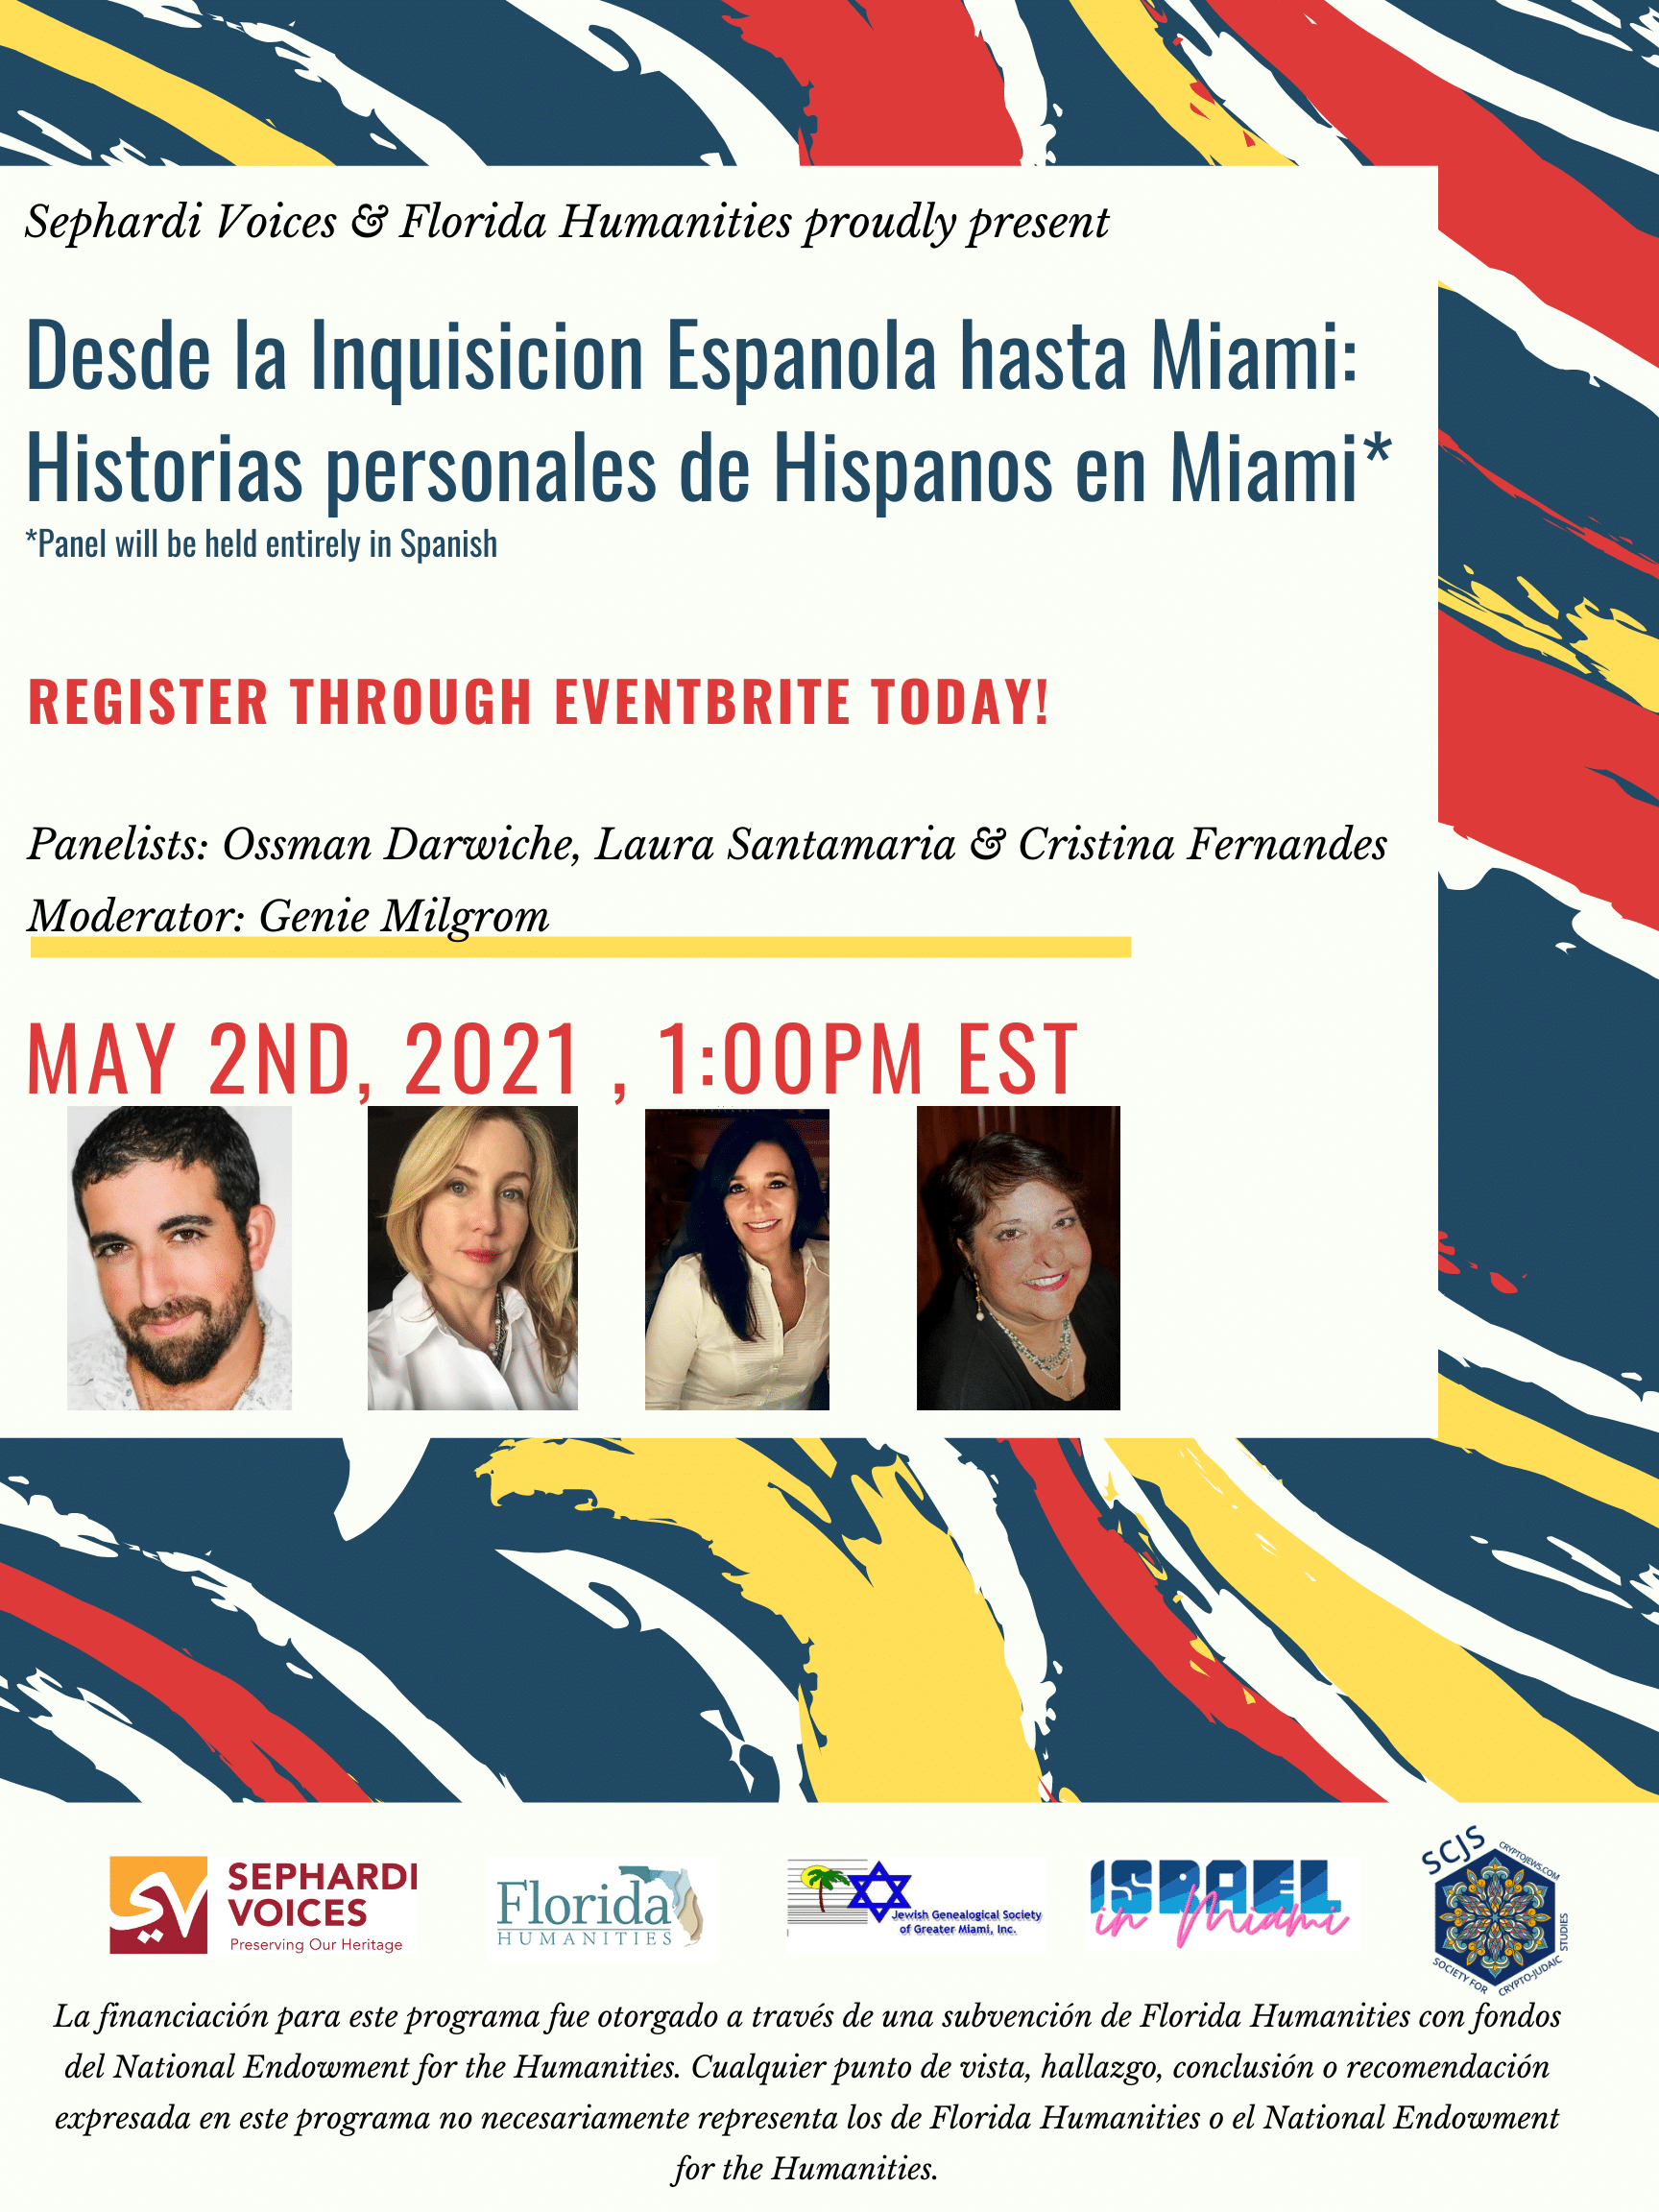 From The Spanish Inquisition To Miami Personal Stories Of Hispanics In Miami SPANISH2